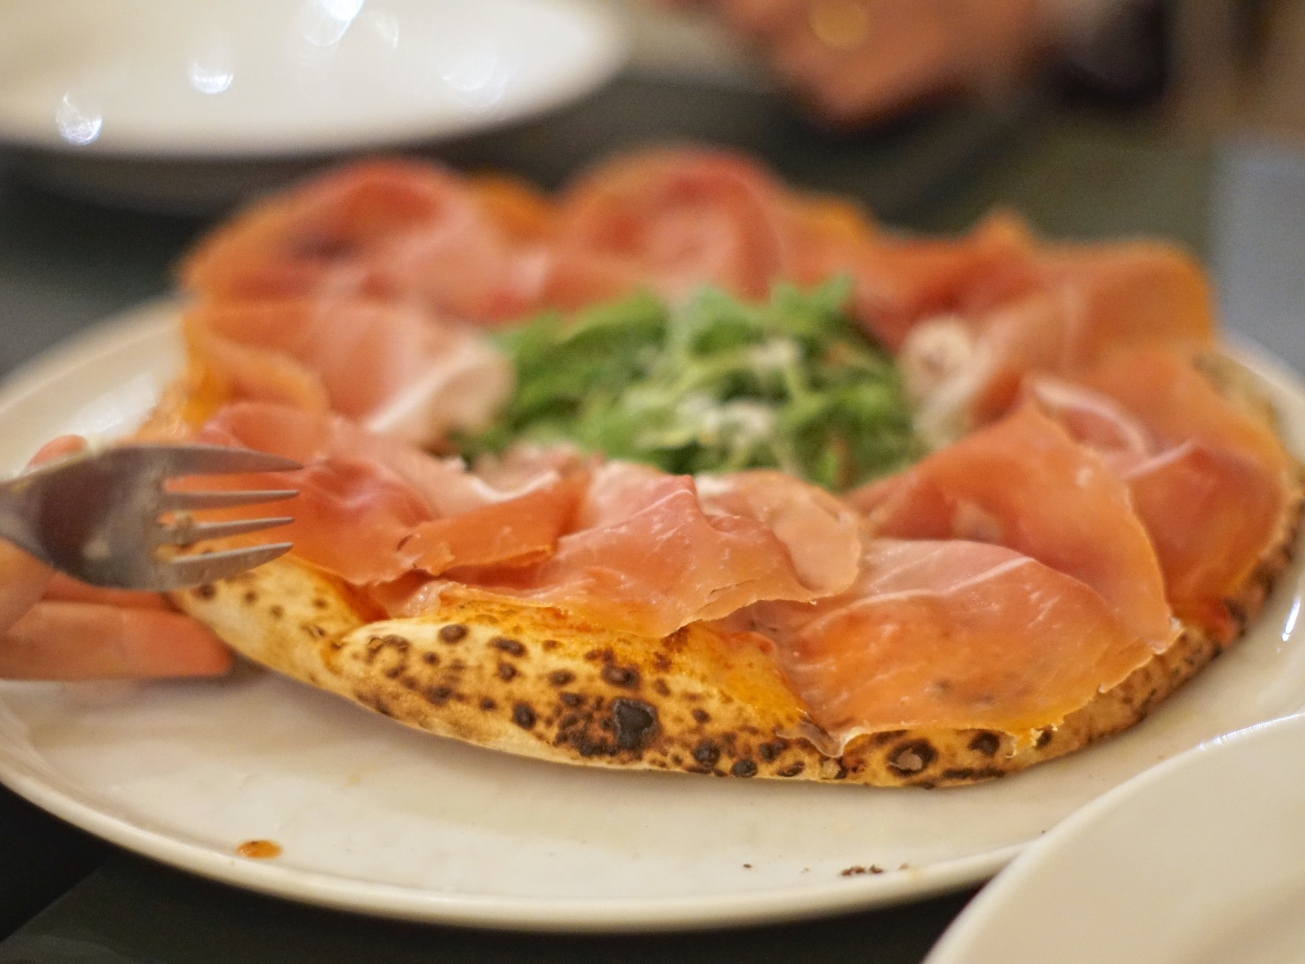 Prosciutto pizza with crust